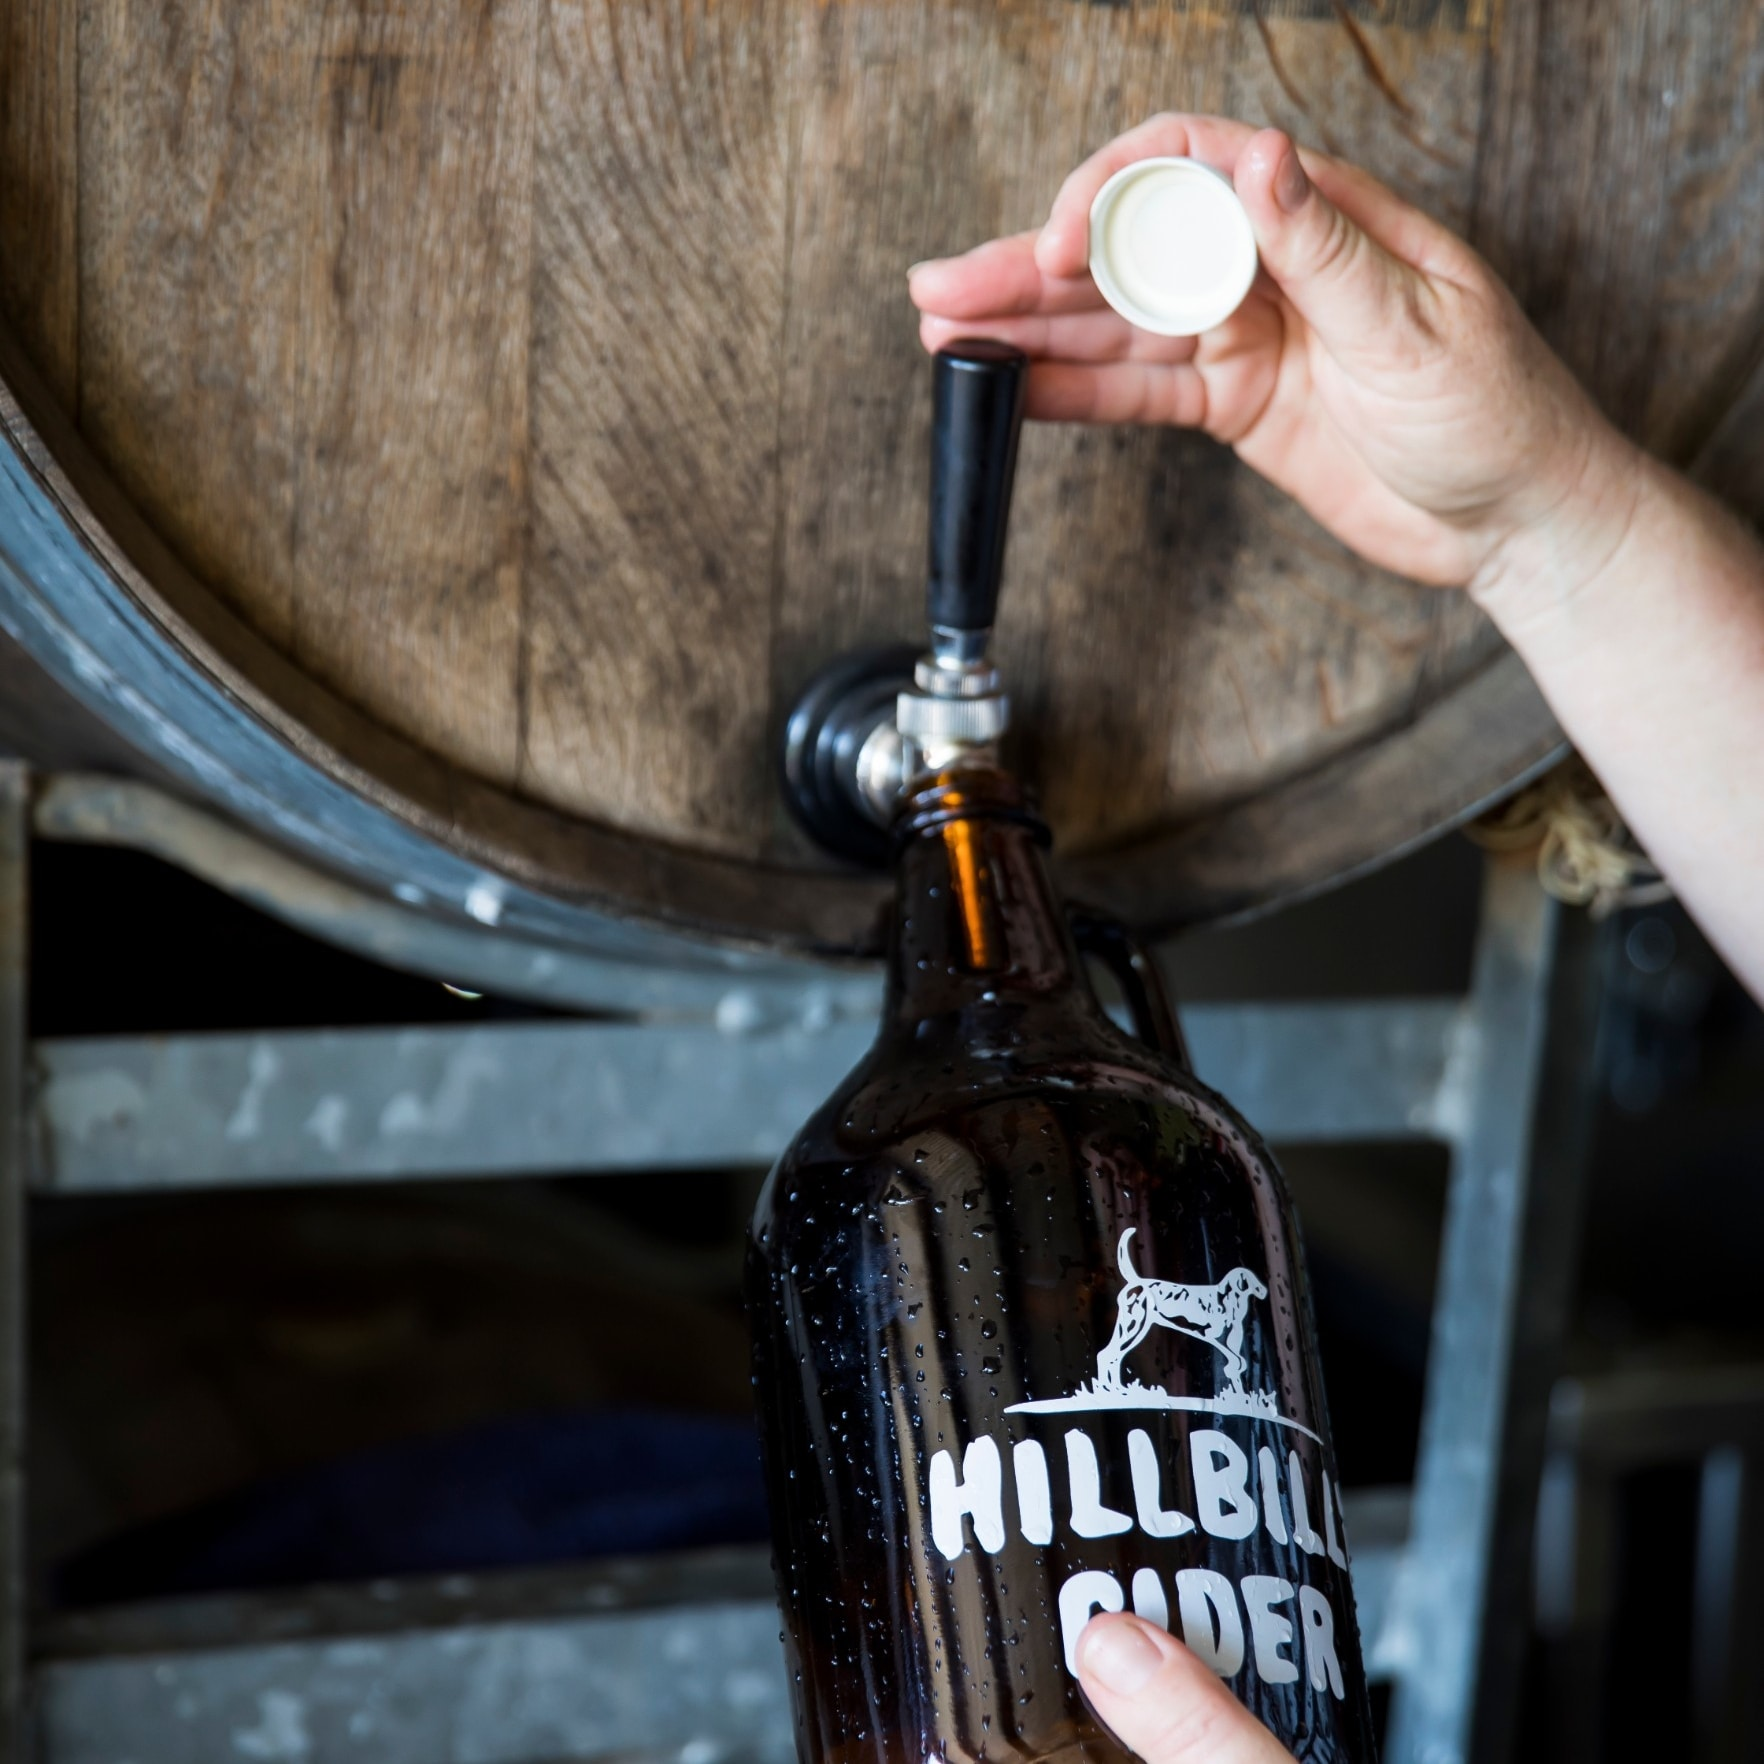 Hillbilly Cider growler being filled with cider © Destination NSW